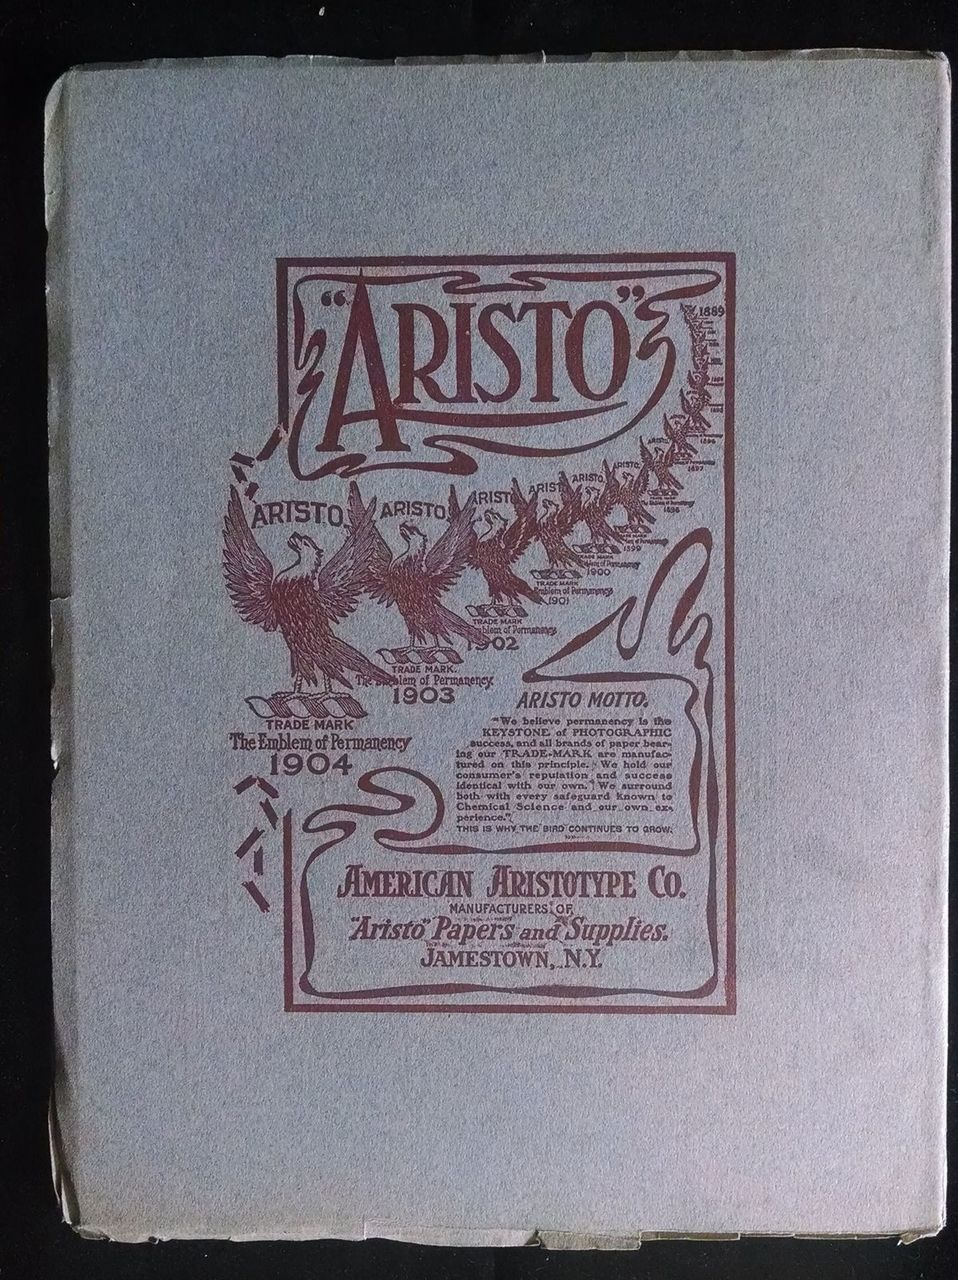 PHOTO-ERA February 1904 Photograph Illustrated Art Journal Photography